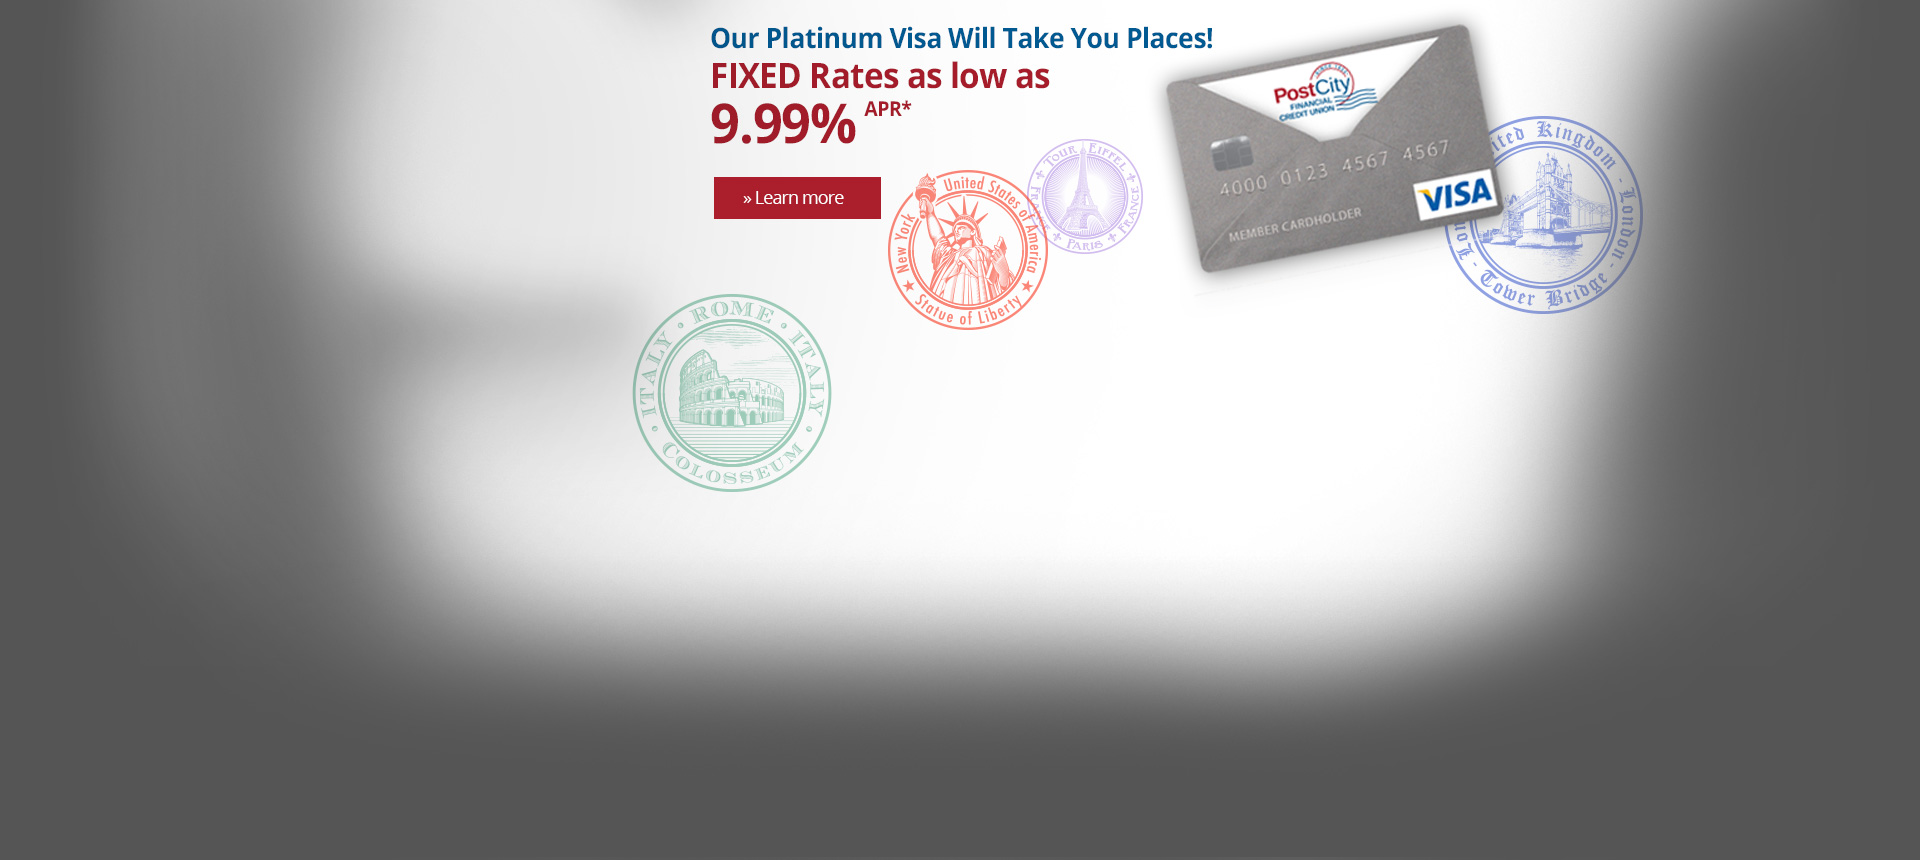 Platinum Visa 2.99% Will Take You Places!